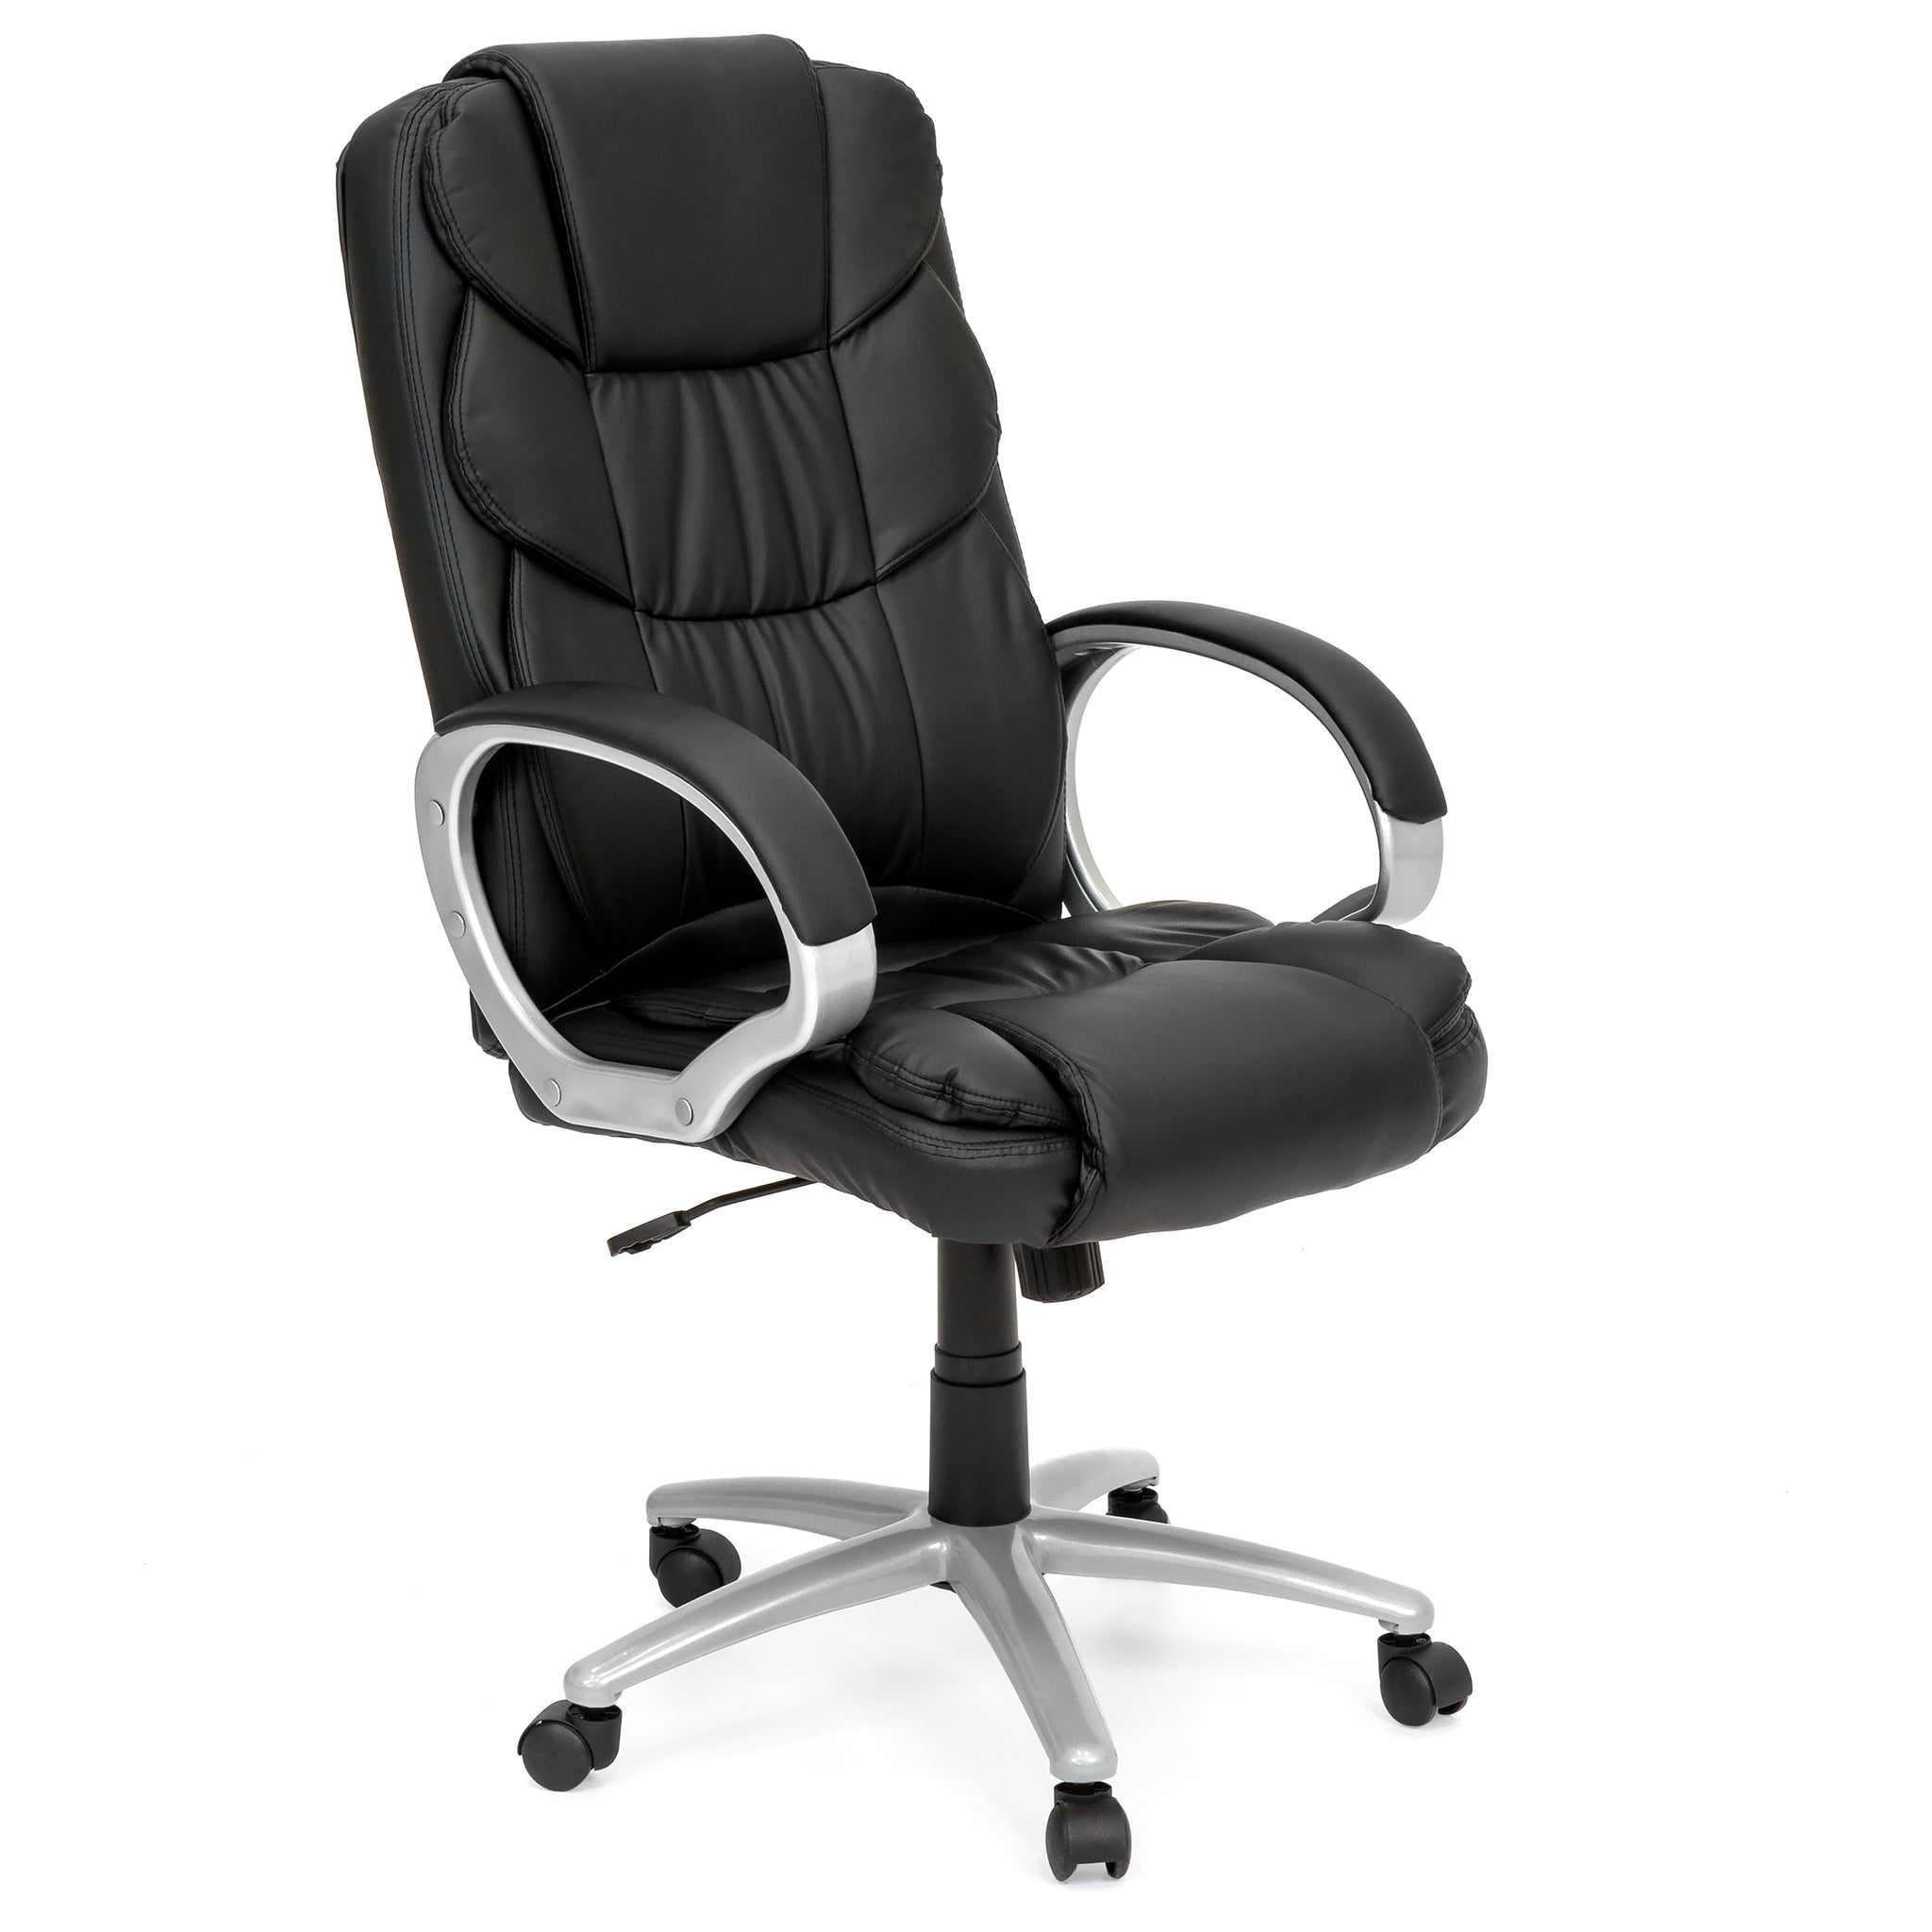 Ergonomic High Back Executive fice Chair Black – Best Choice